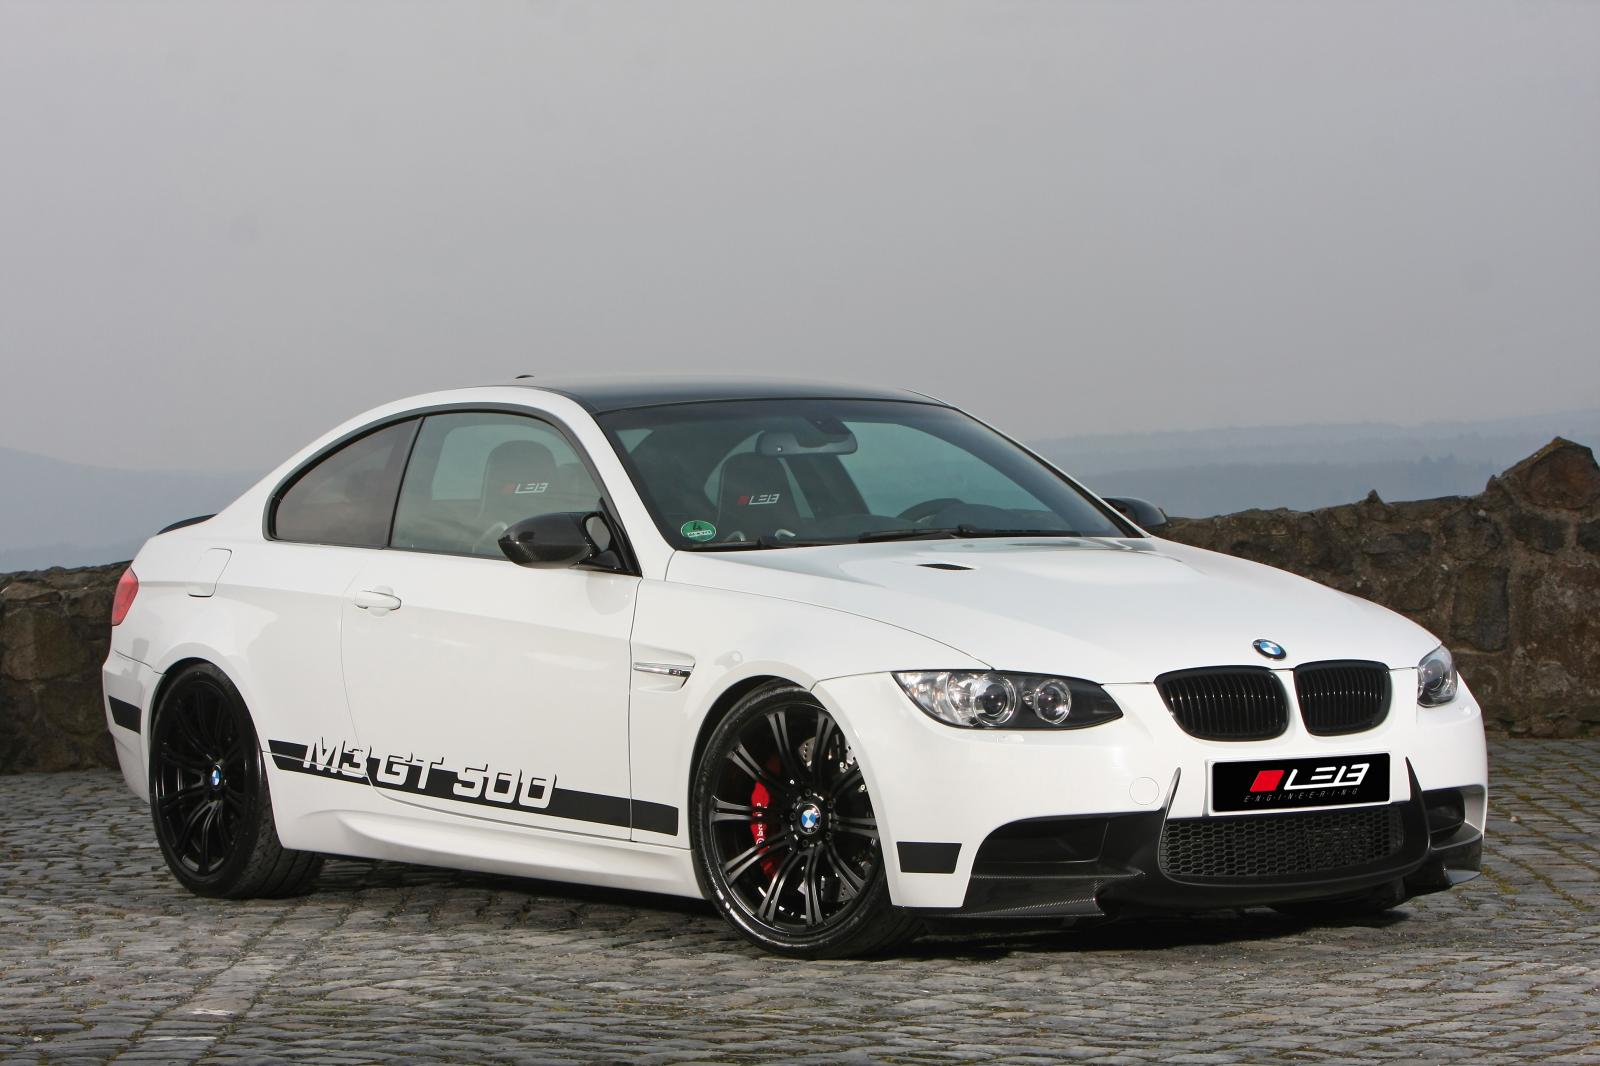 BMW M3 GT 500 By Leib Engineering Spells Trouble - autoevolution